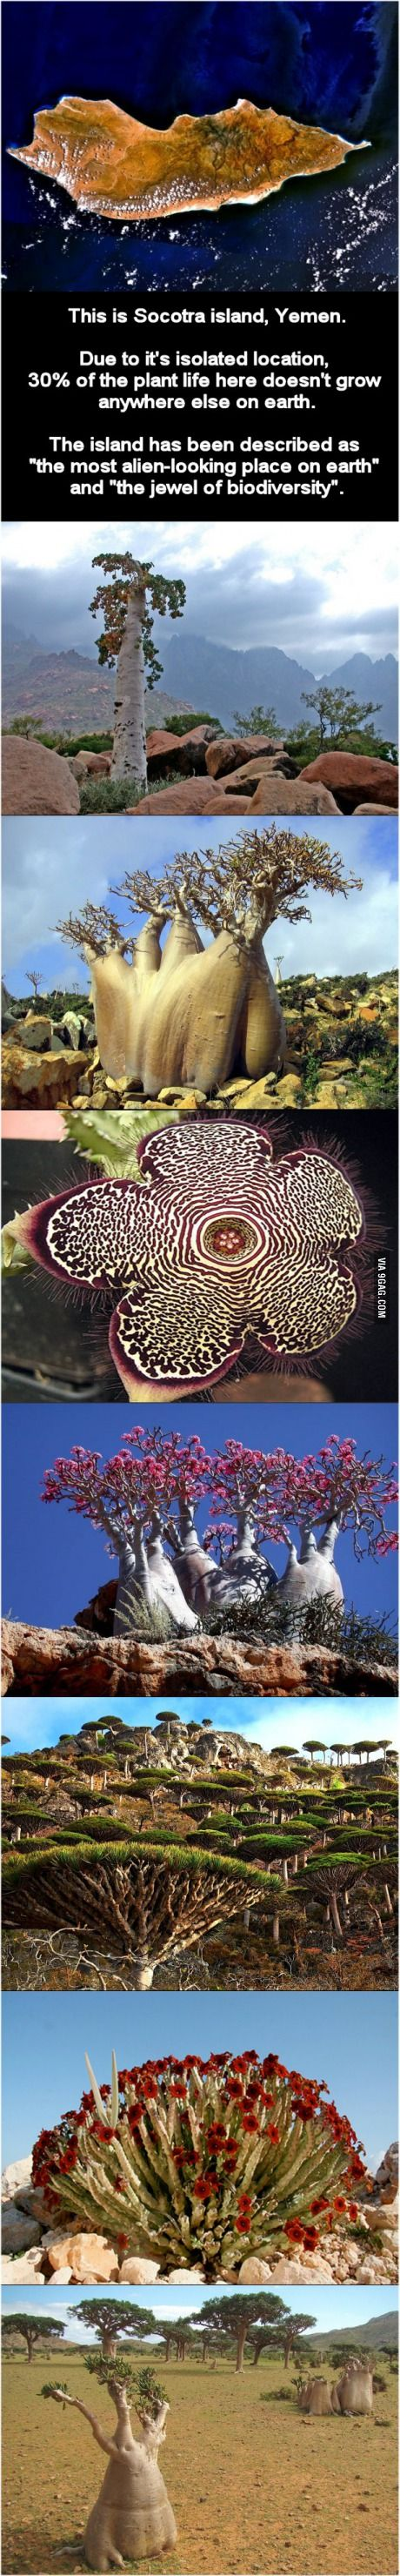 Island of Socotra and its flora. Also spelled Soqotra. A small archipelago of four islands in the Indian Ocean, part of Yemen.